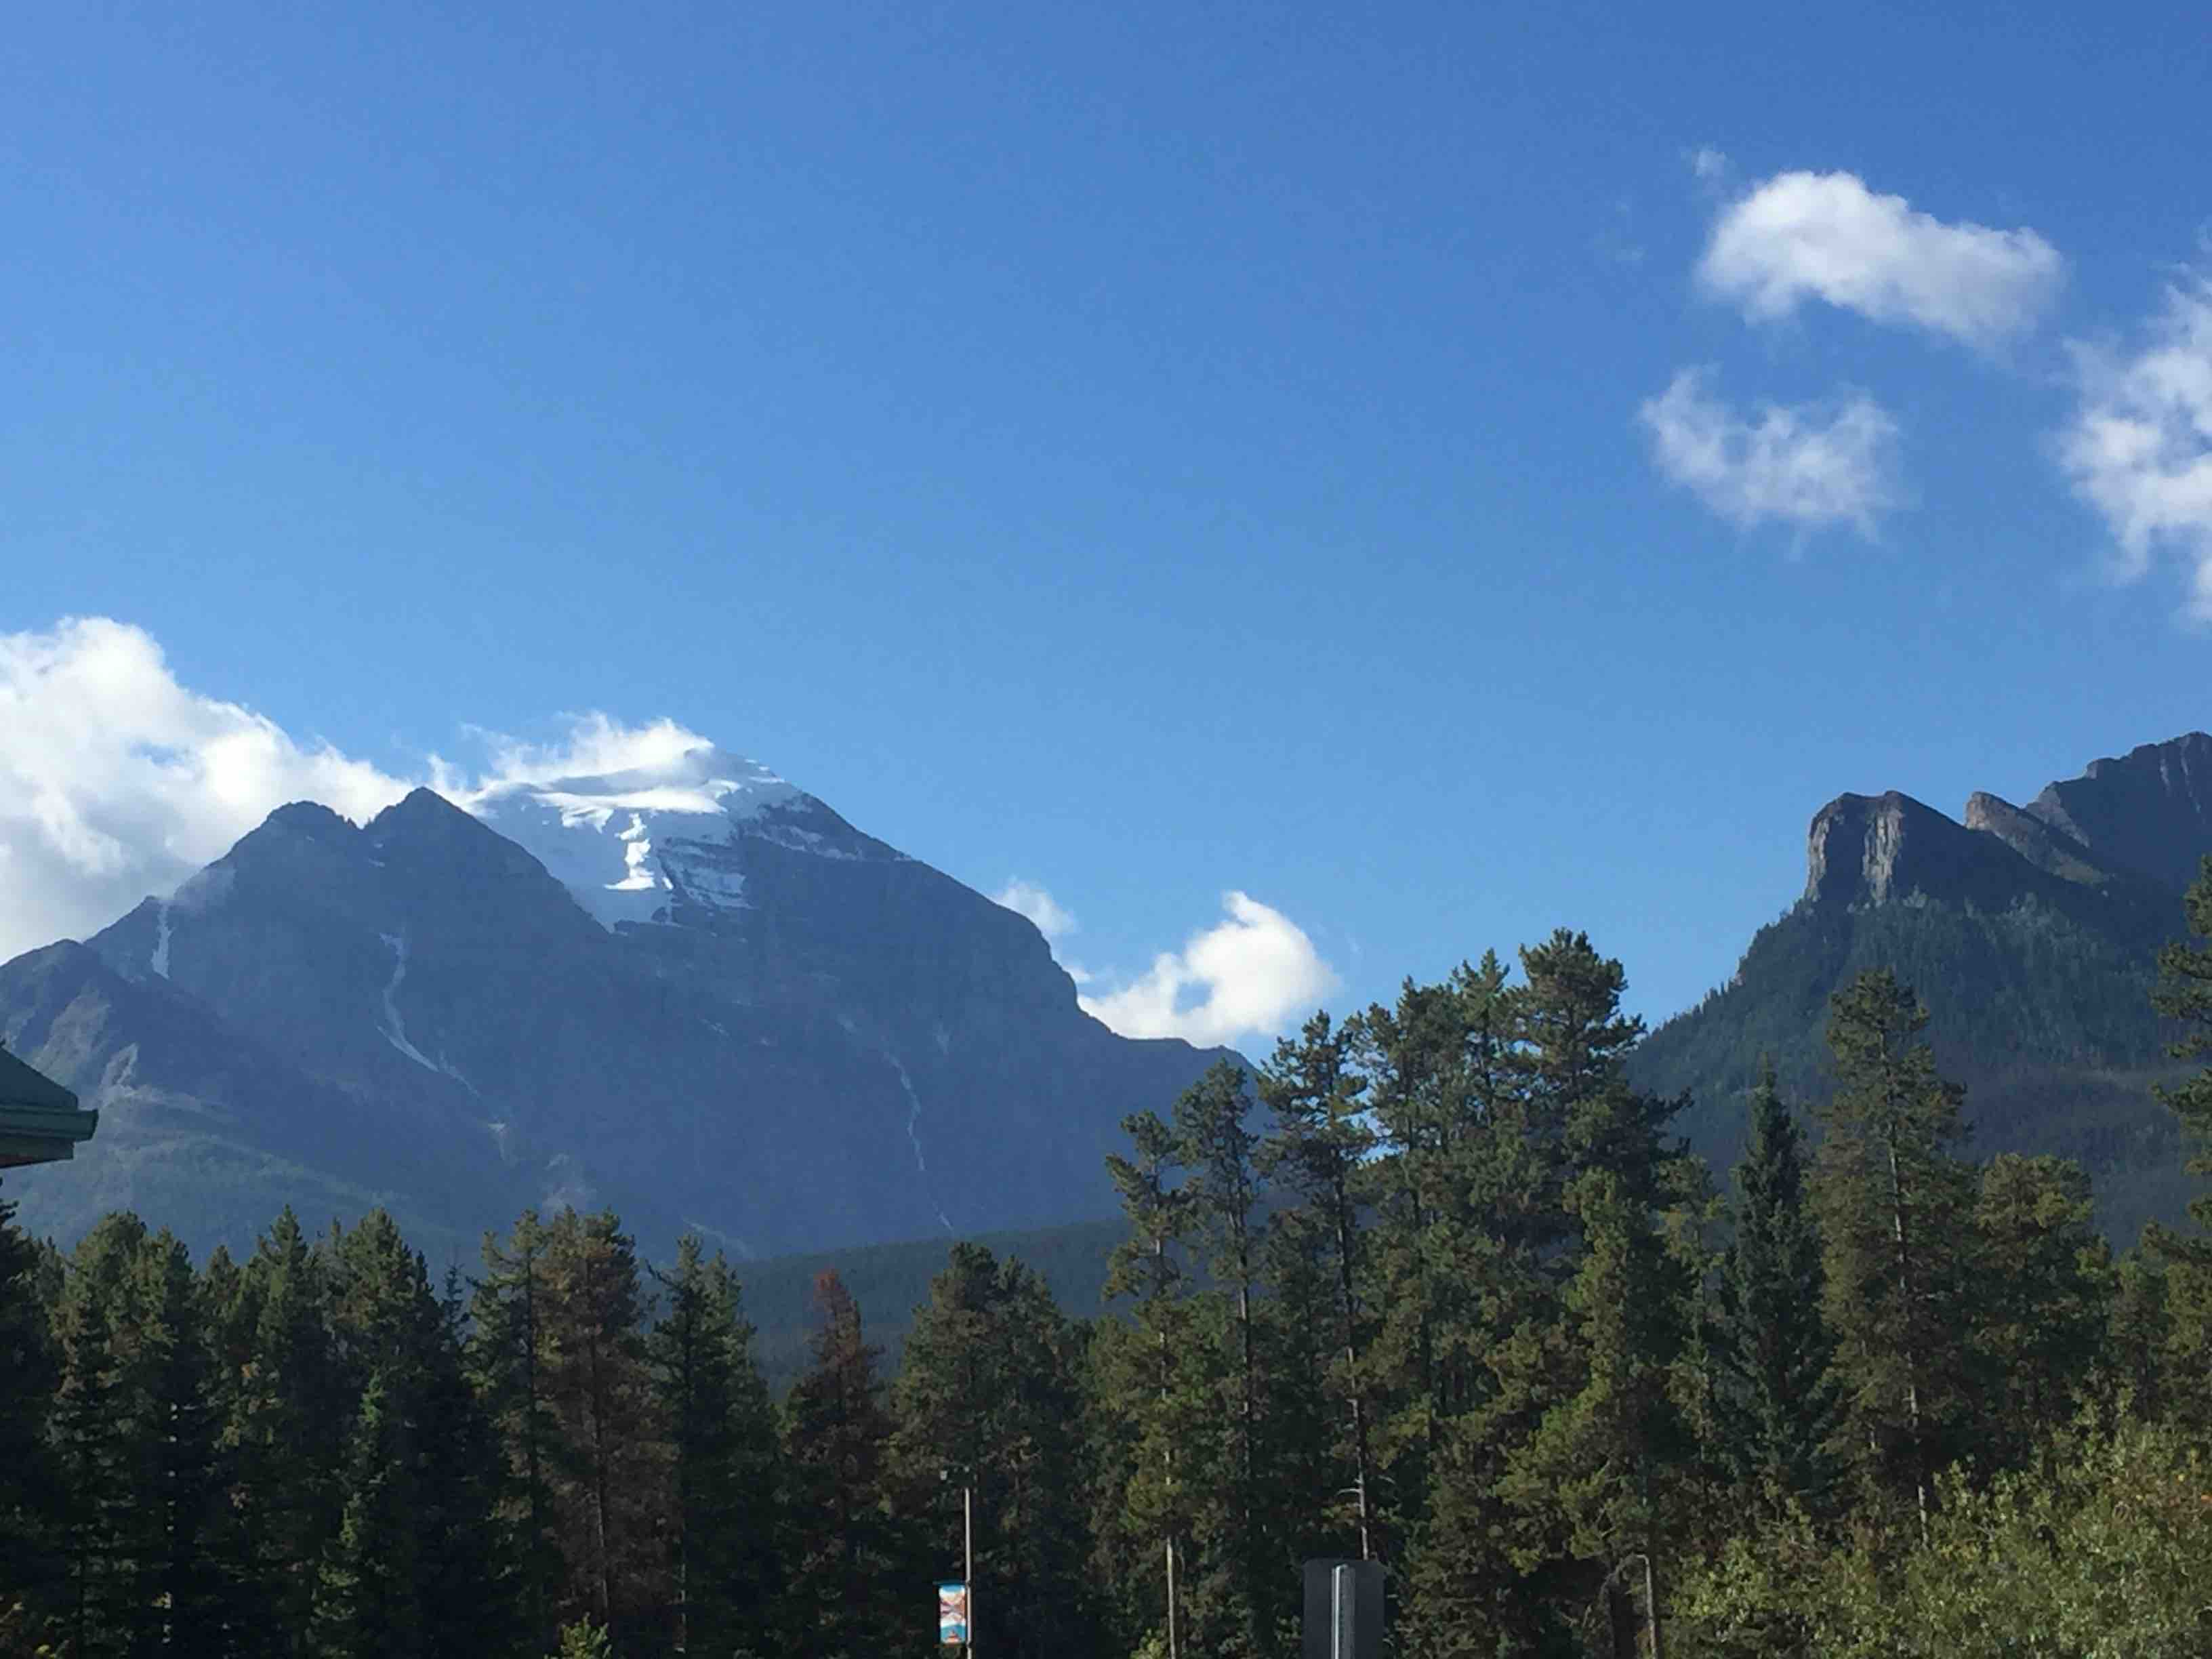 Clouds, Mountains, and Heeding the Call of Nature